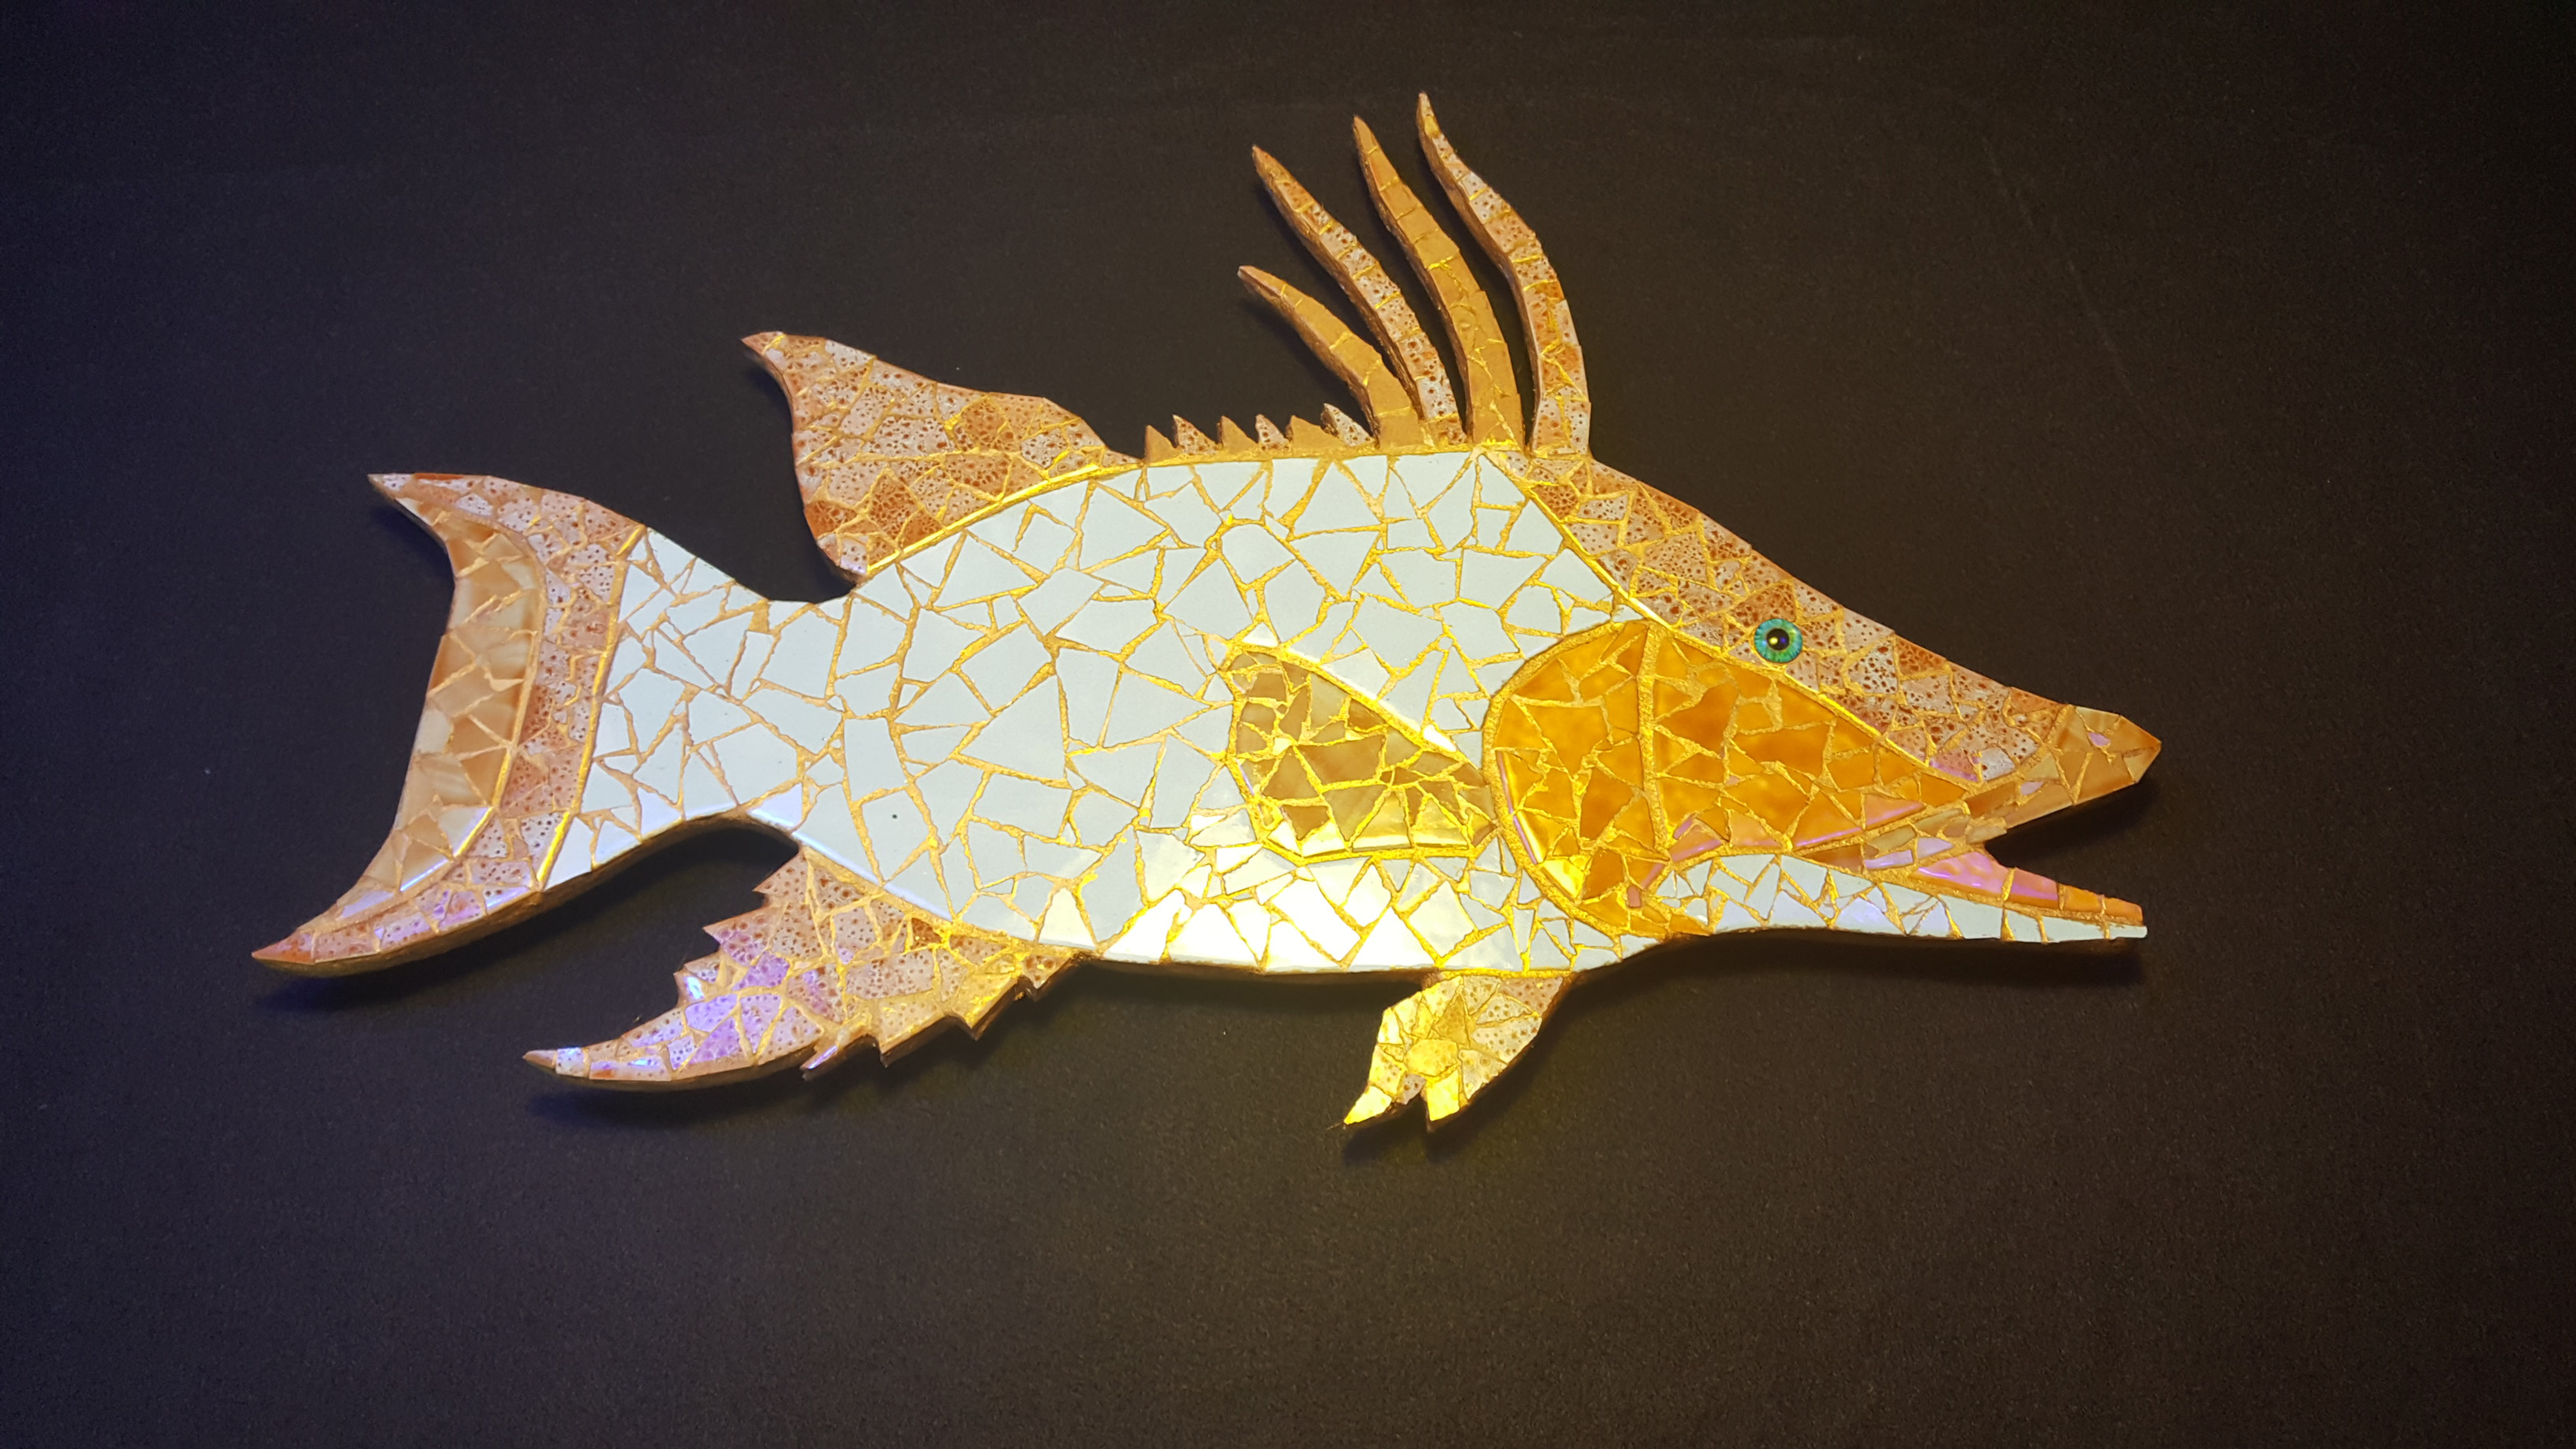 Hogfish - Medium